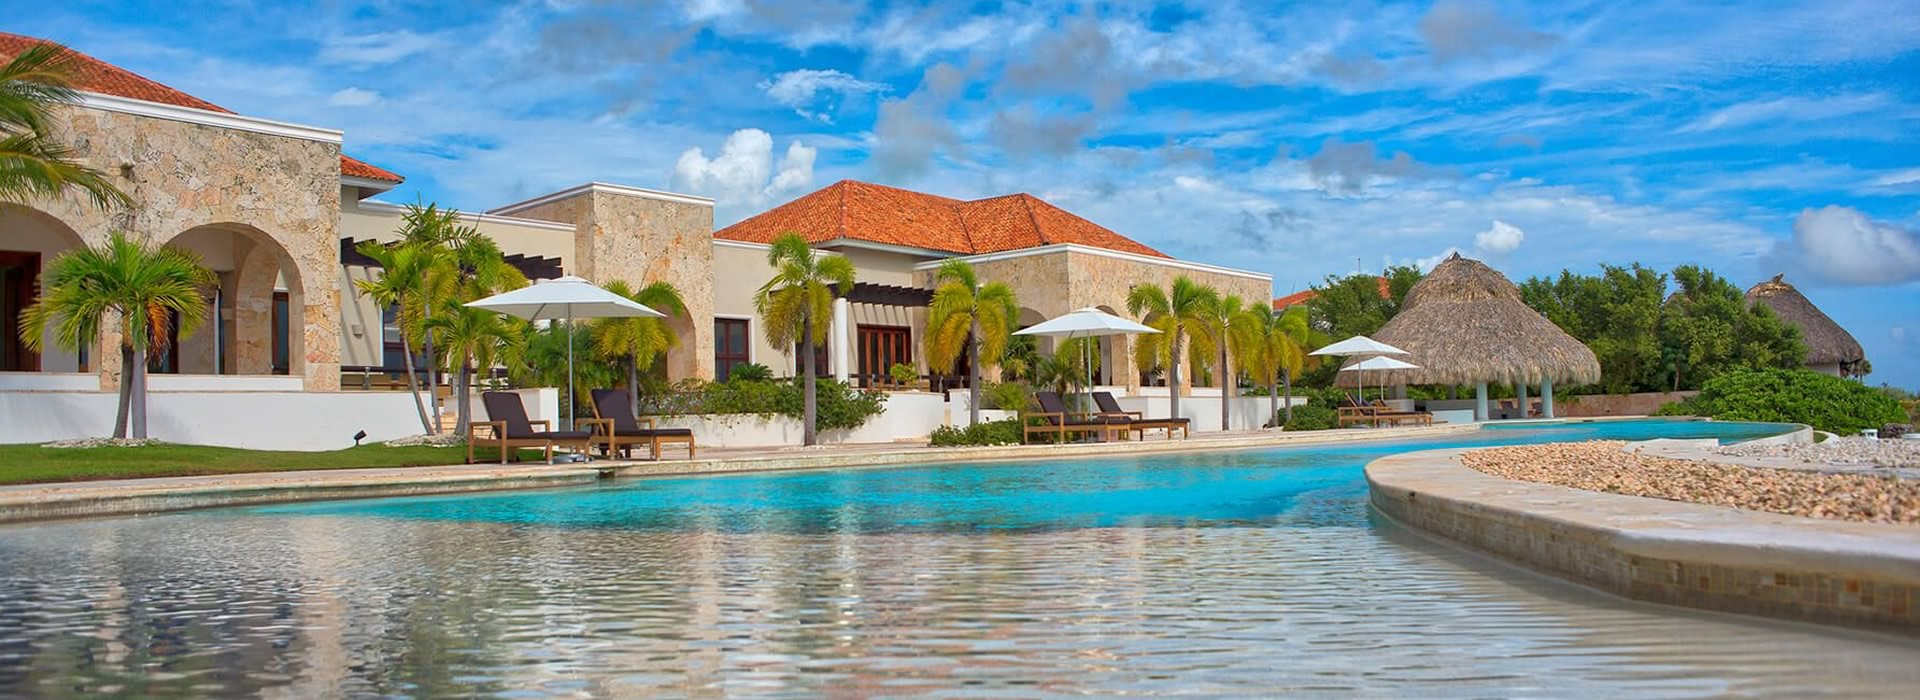 Xëliter Golden Bear Lodge Cap Cana